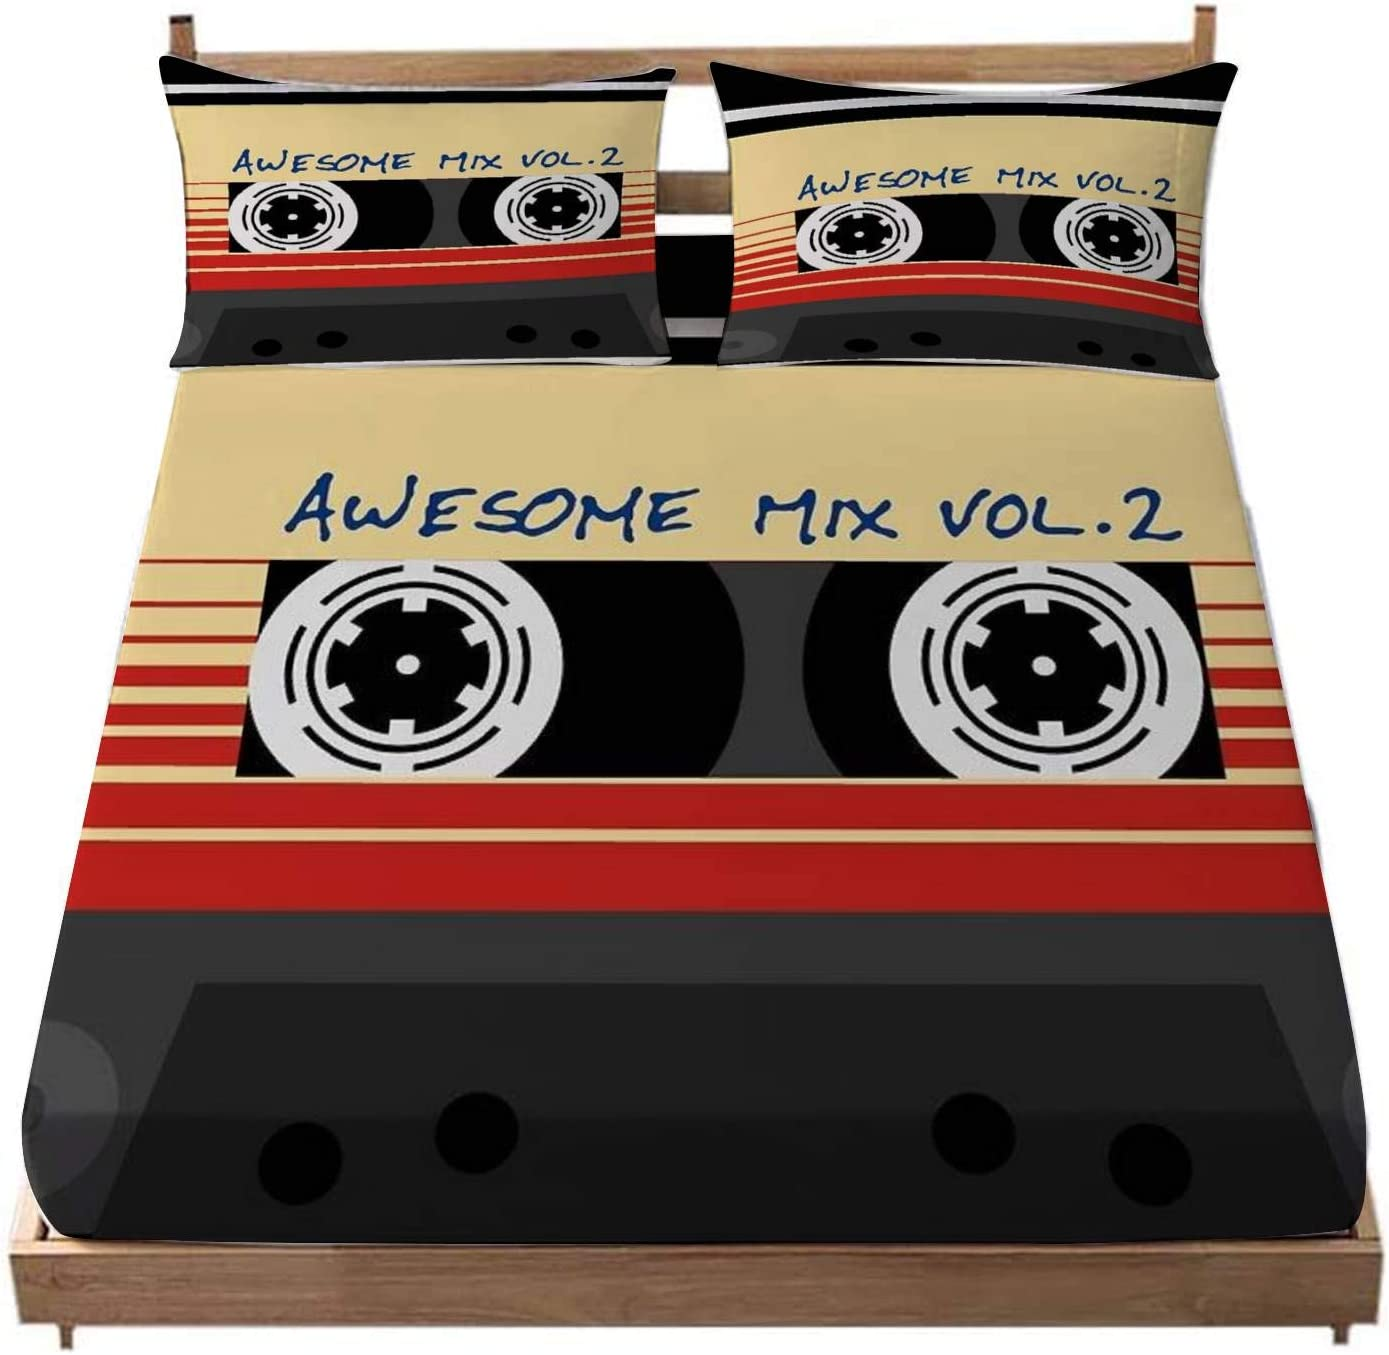 Deep Pocket Fitted Sheet Awesome Mixtape Vol 2 Cassette Retro